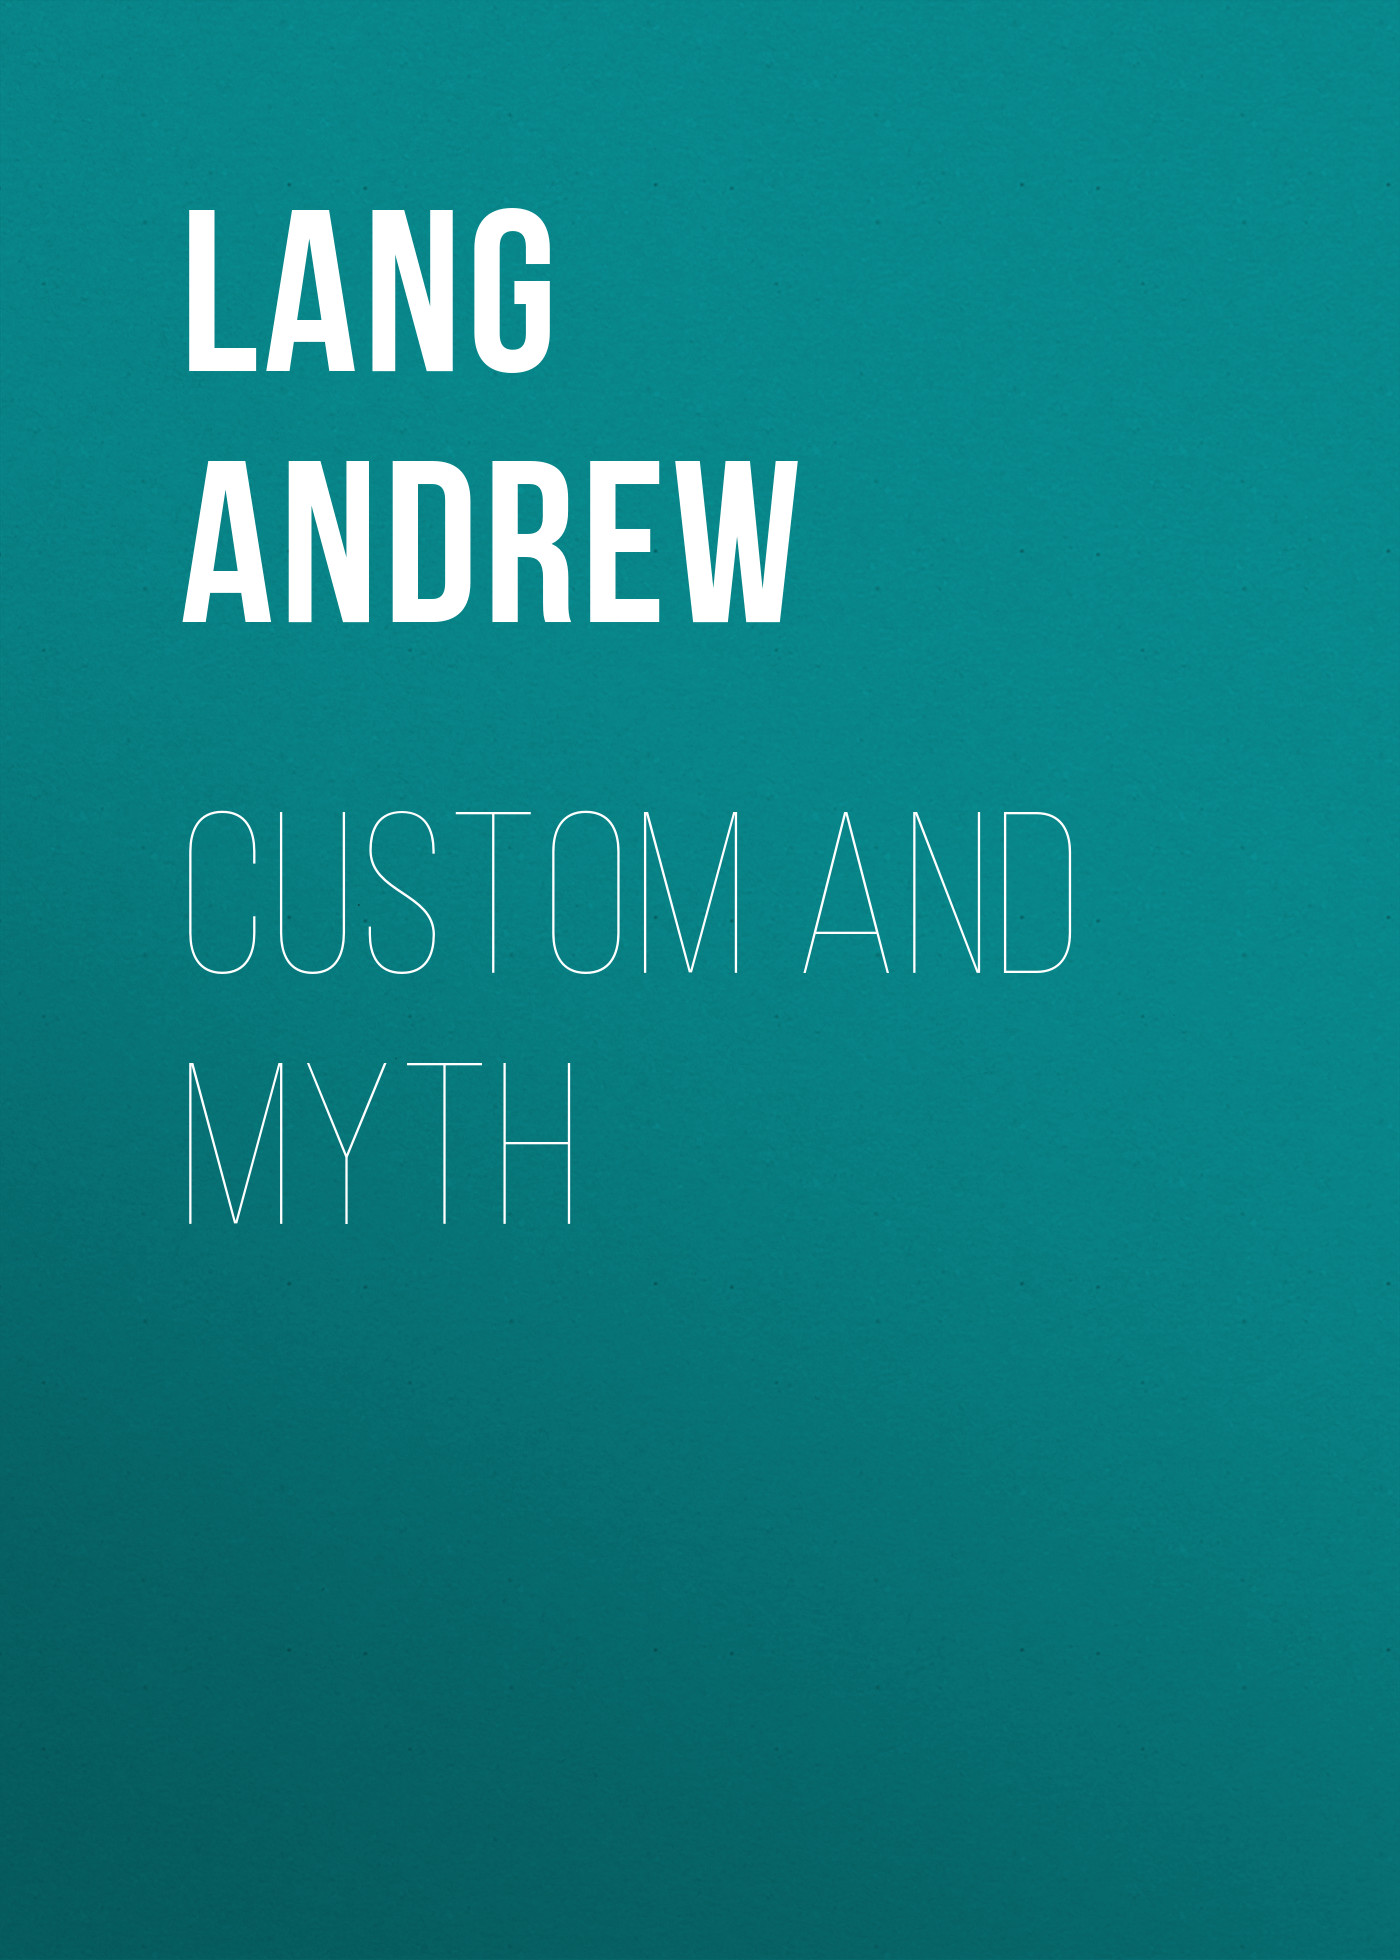 Lang Andrew Custom and Myth